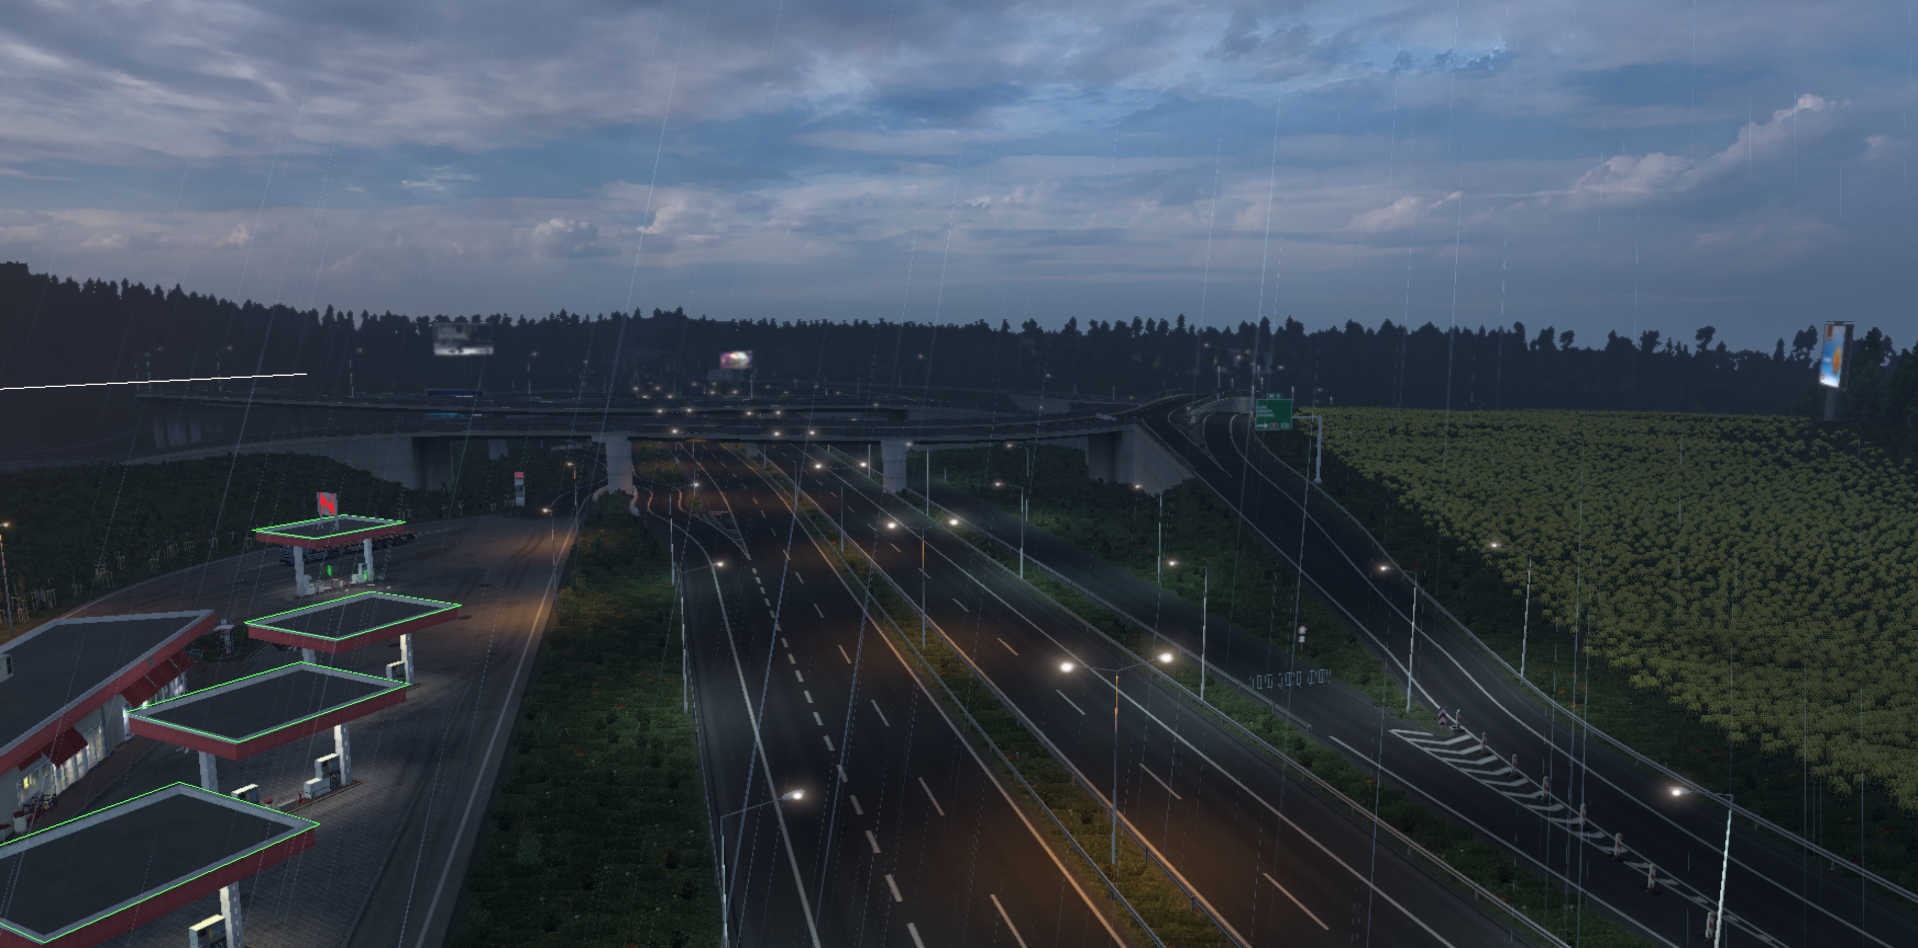 ets2_20210804_144432_00.png